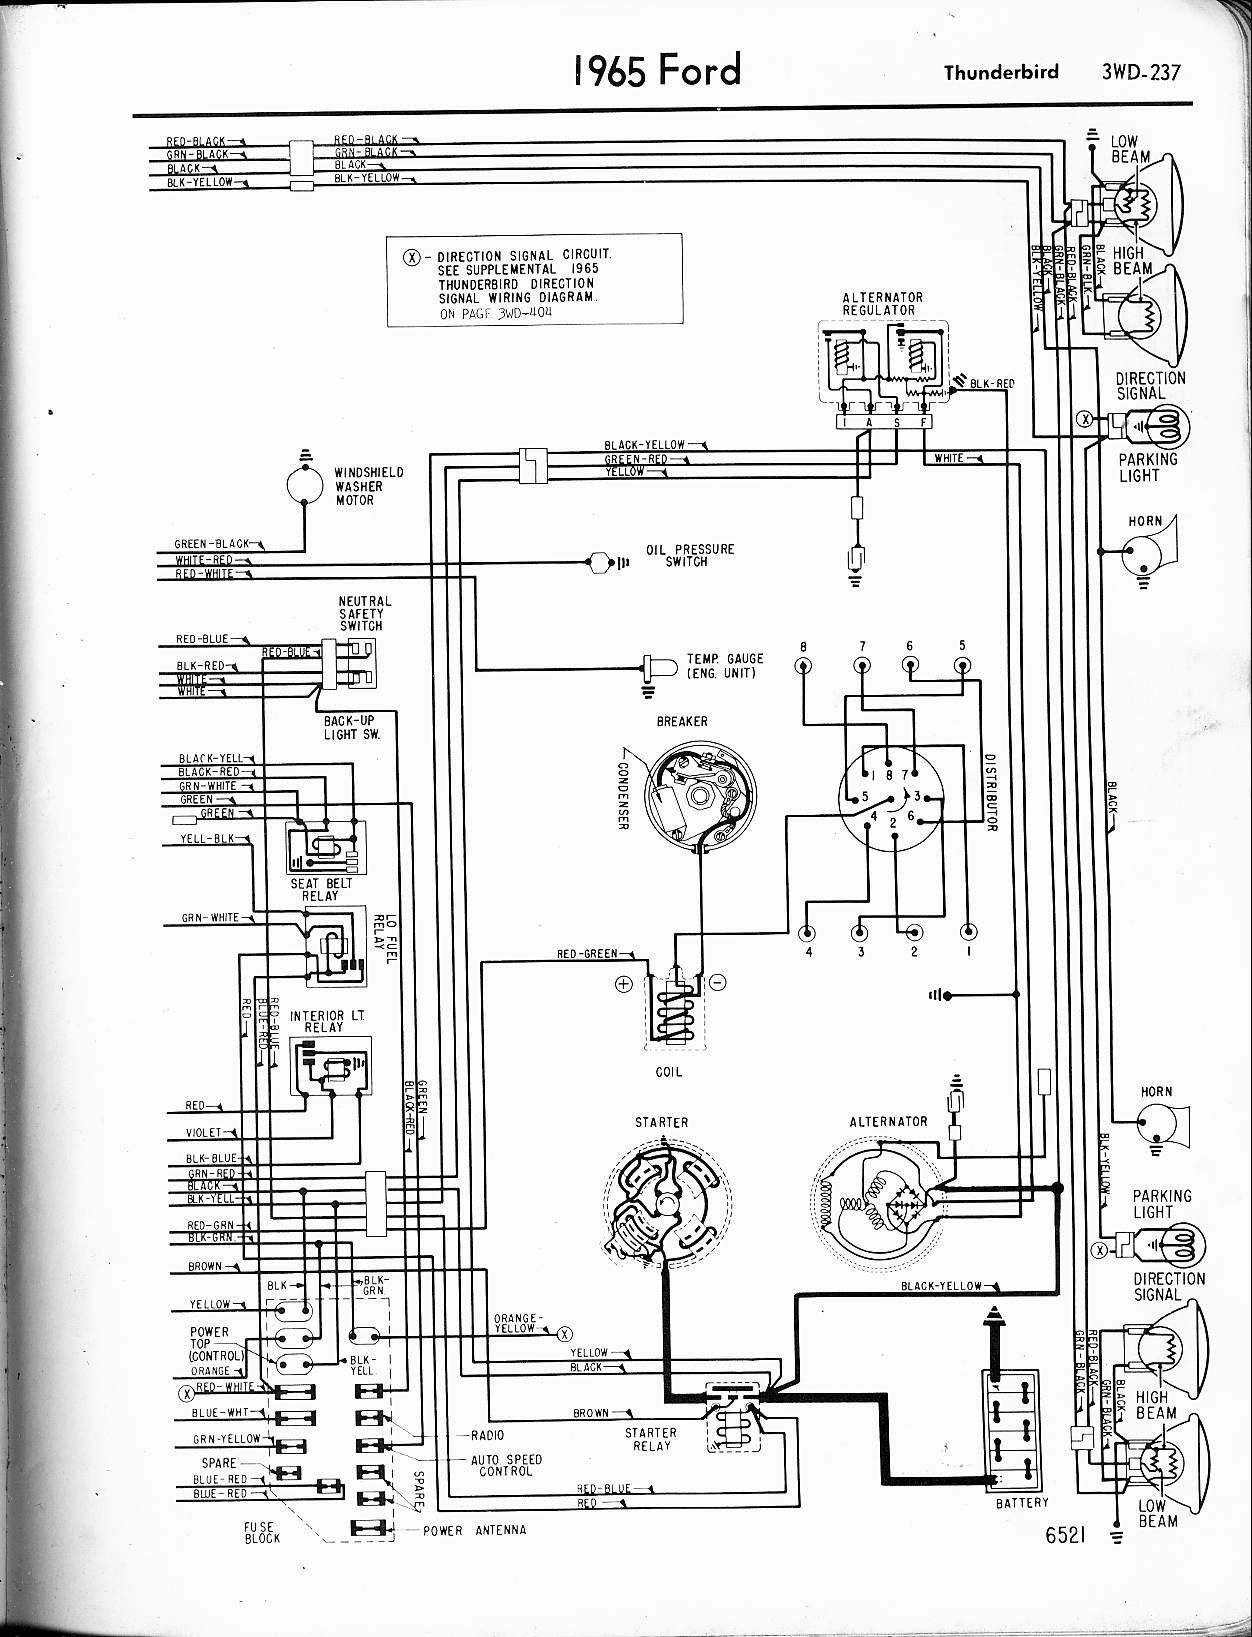 small resolution of new need wiring diagram diagram wiringdiagram diagramming diagramm visuals visualisation graphical